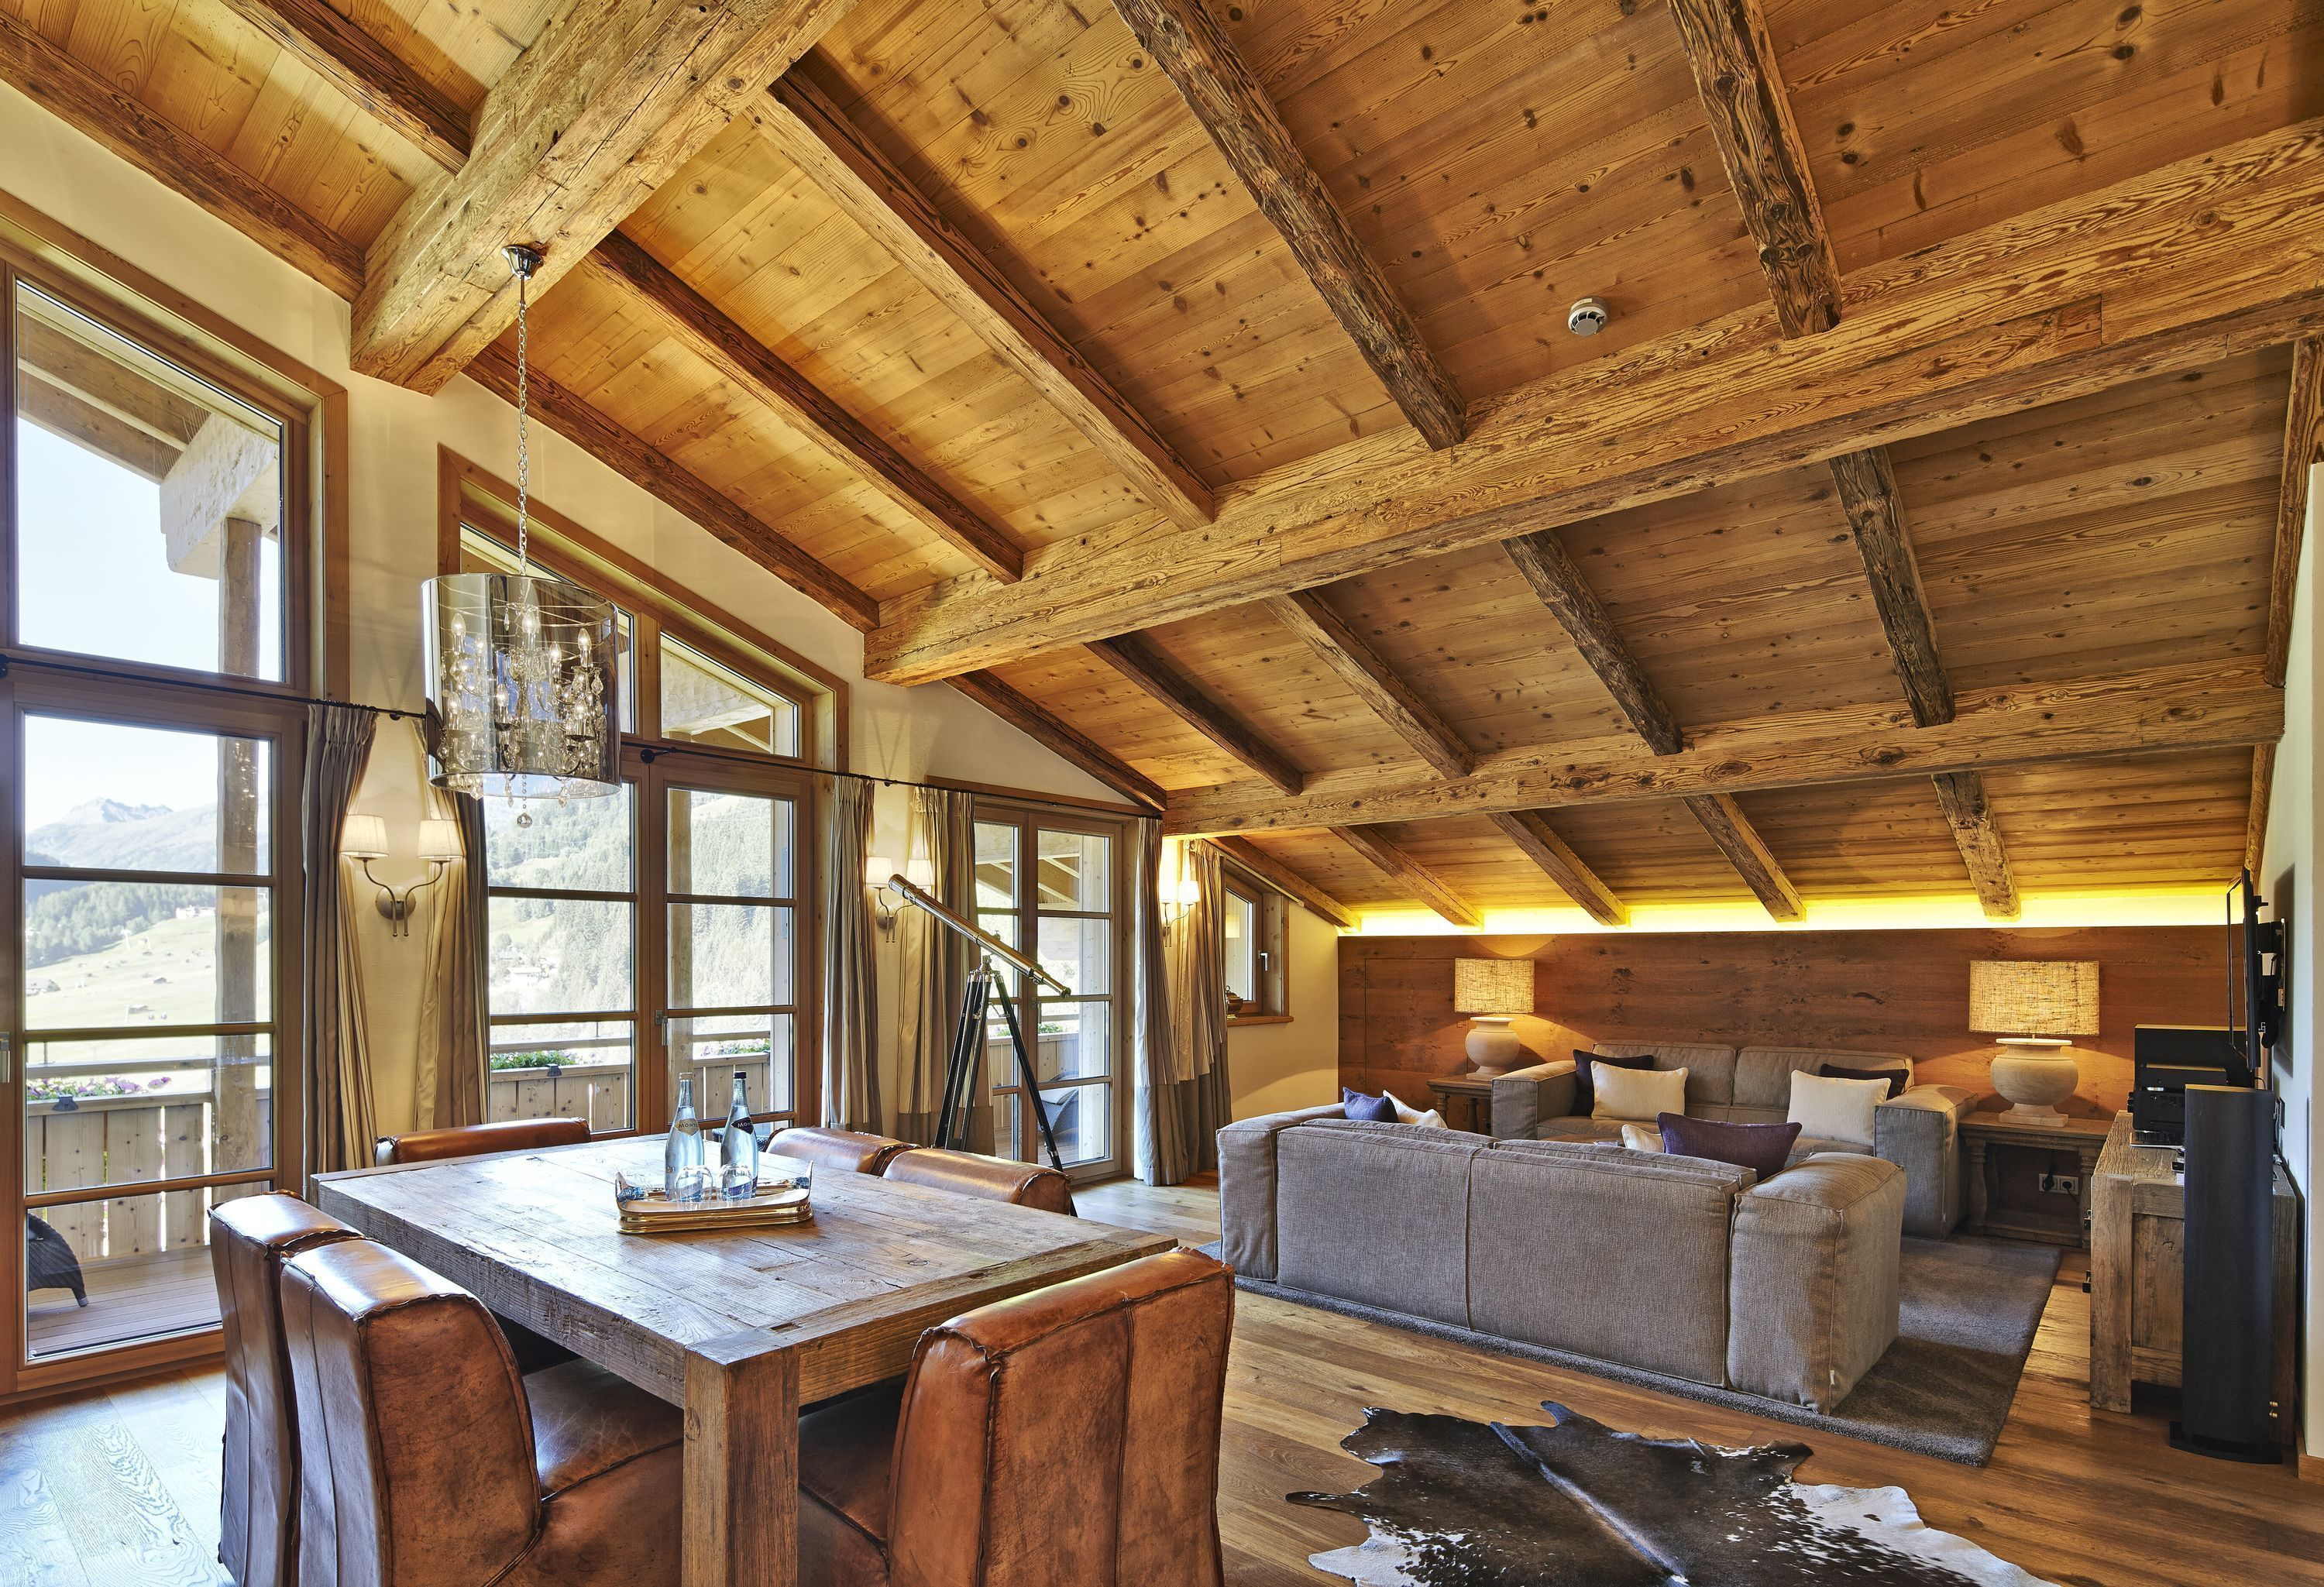 Rustic Retreat: Hotel Tannenhof near St Anton